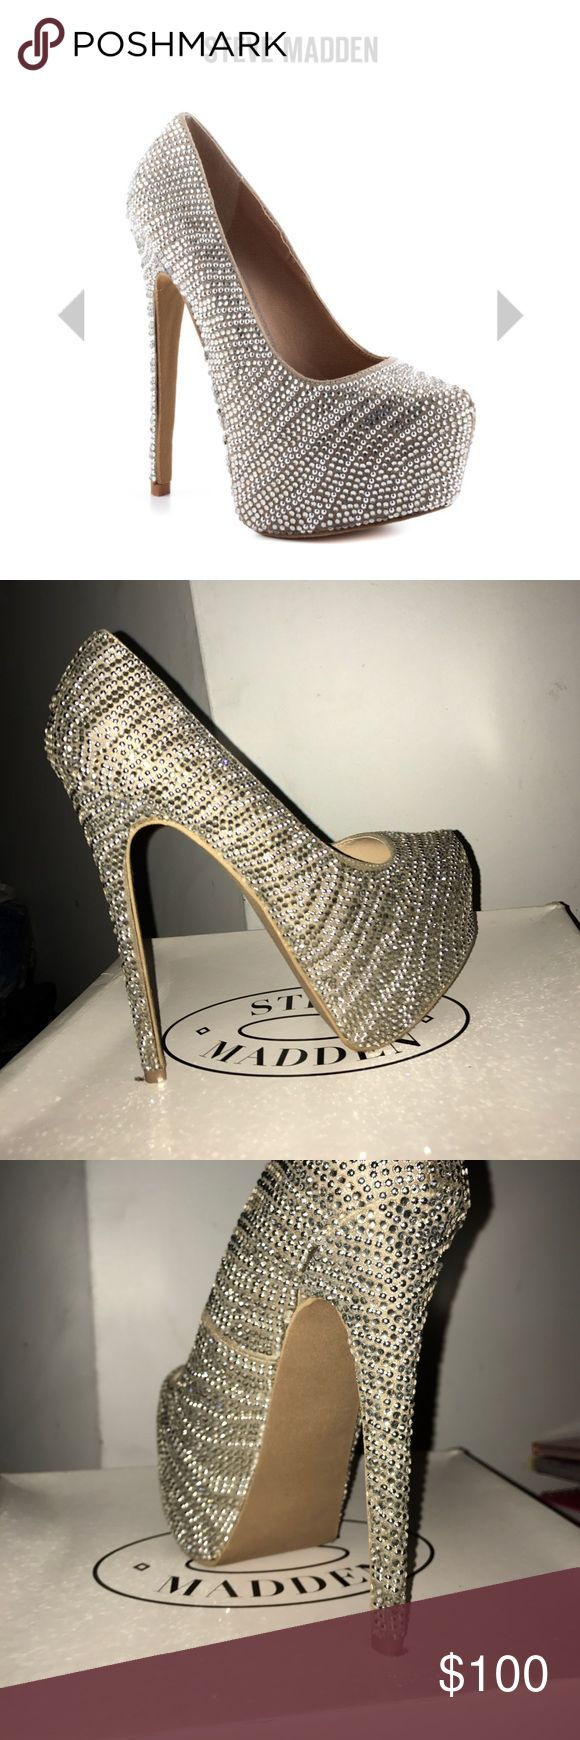 Rhinestone Platform Heels Worn once for an hour or two. Barely walked in them.  Could sell through E bay for cheaper Steve Madden Shoes Platforms